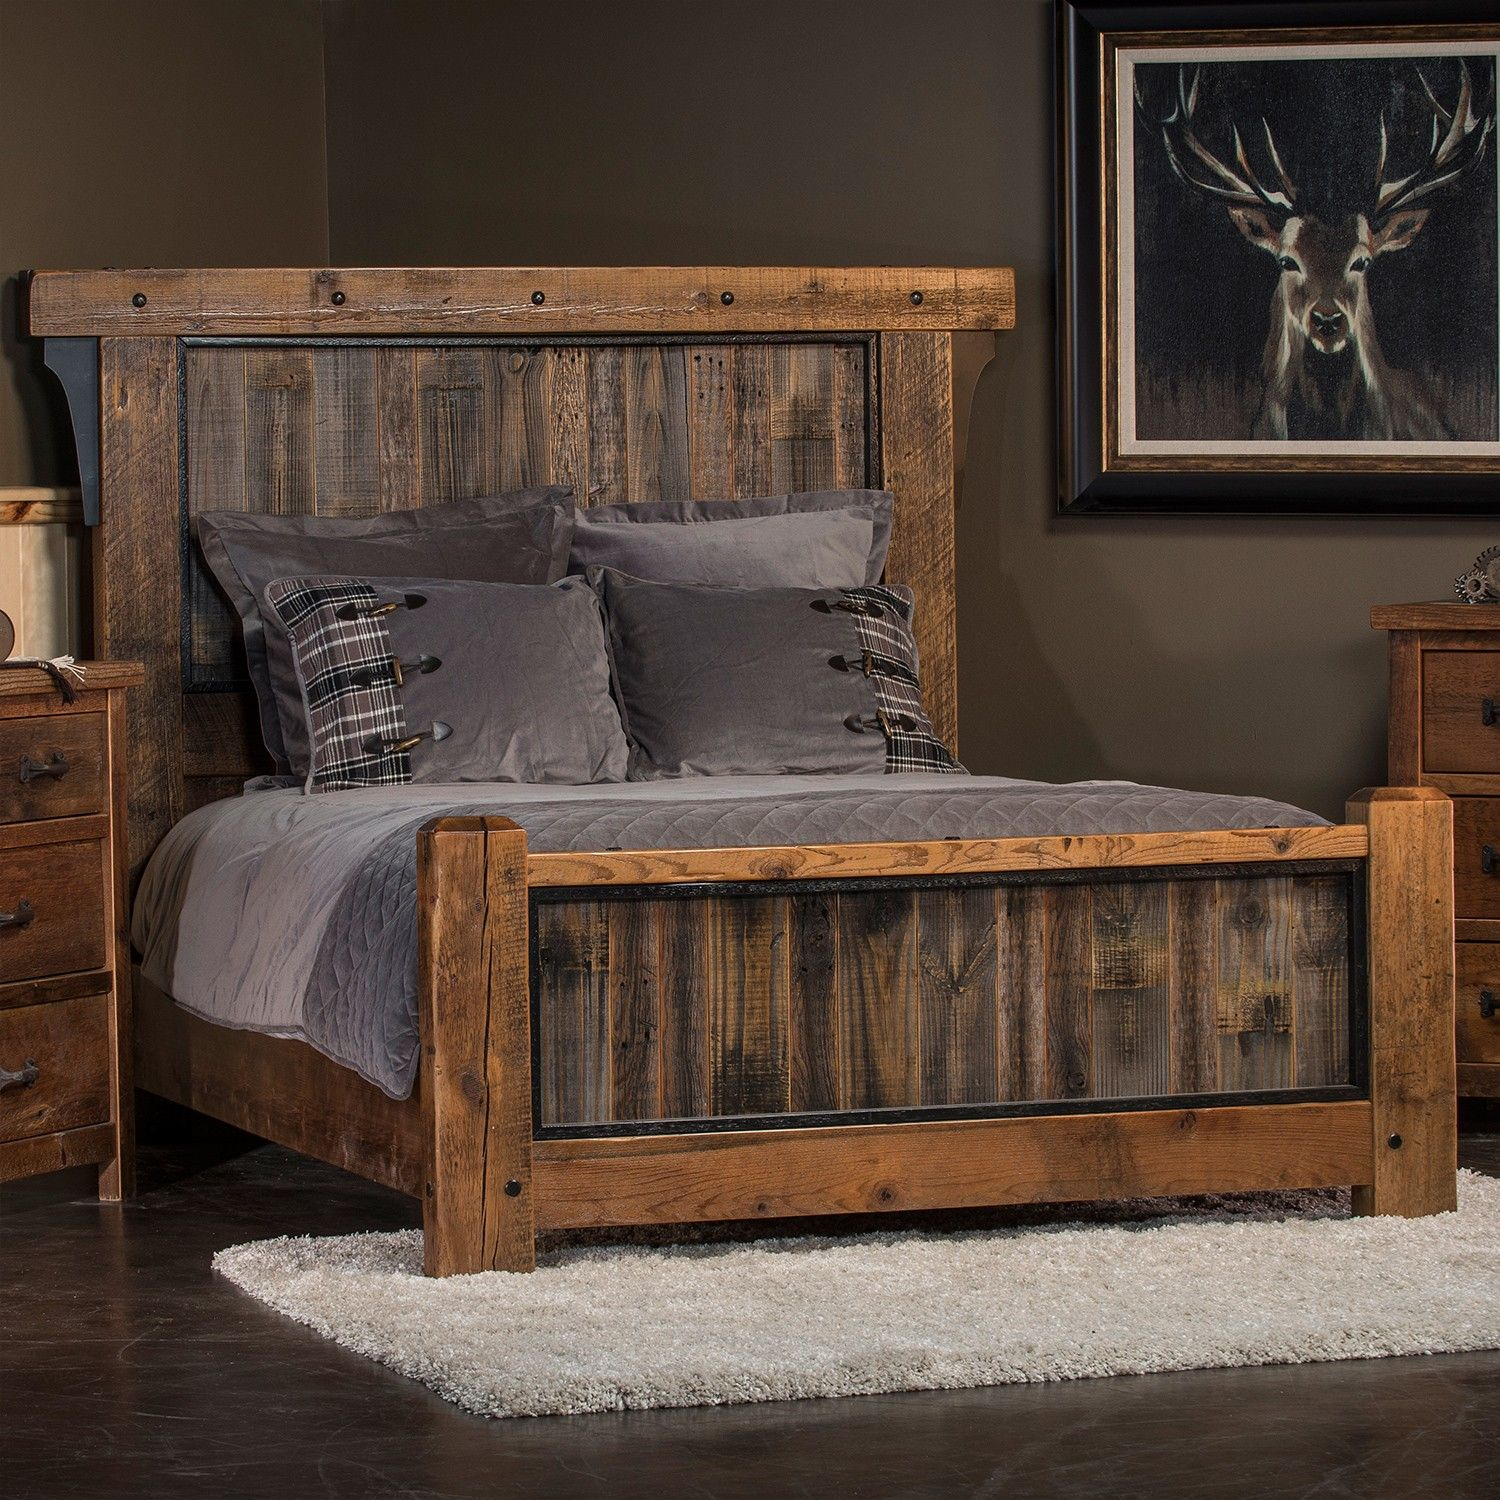 Adventure Mountain Timber Frame Panel Bed | Muebles de madera ...